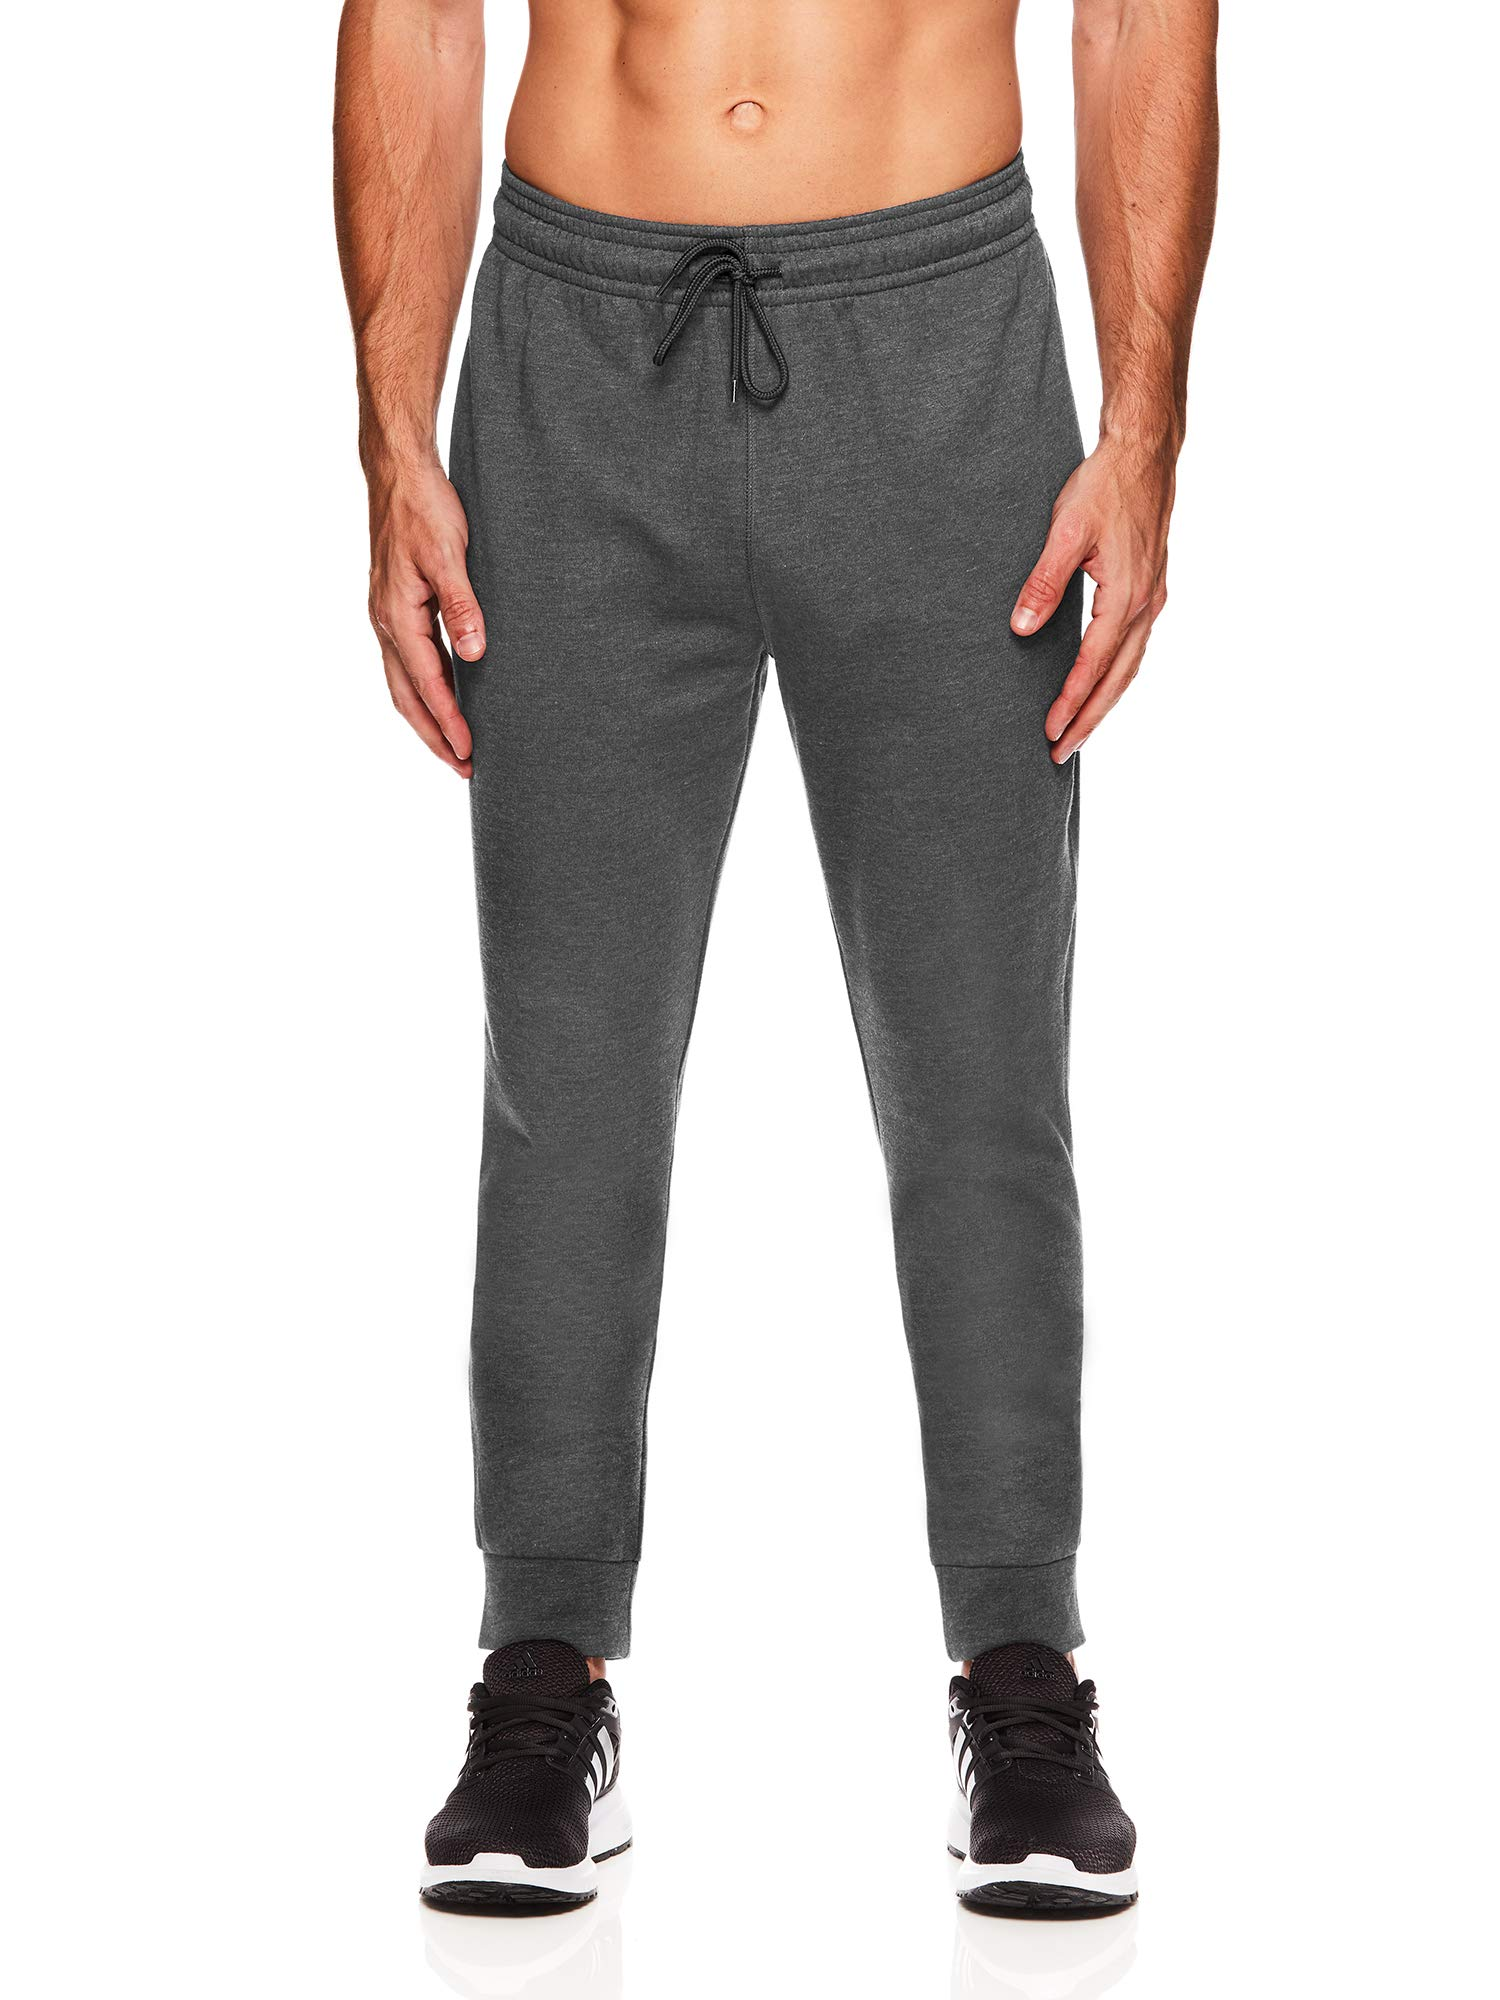 HEAD Men's Jogger Activewear Pants - Performance Workout & Running Sweatpants - Ultra Charcoal Heather, Small